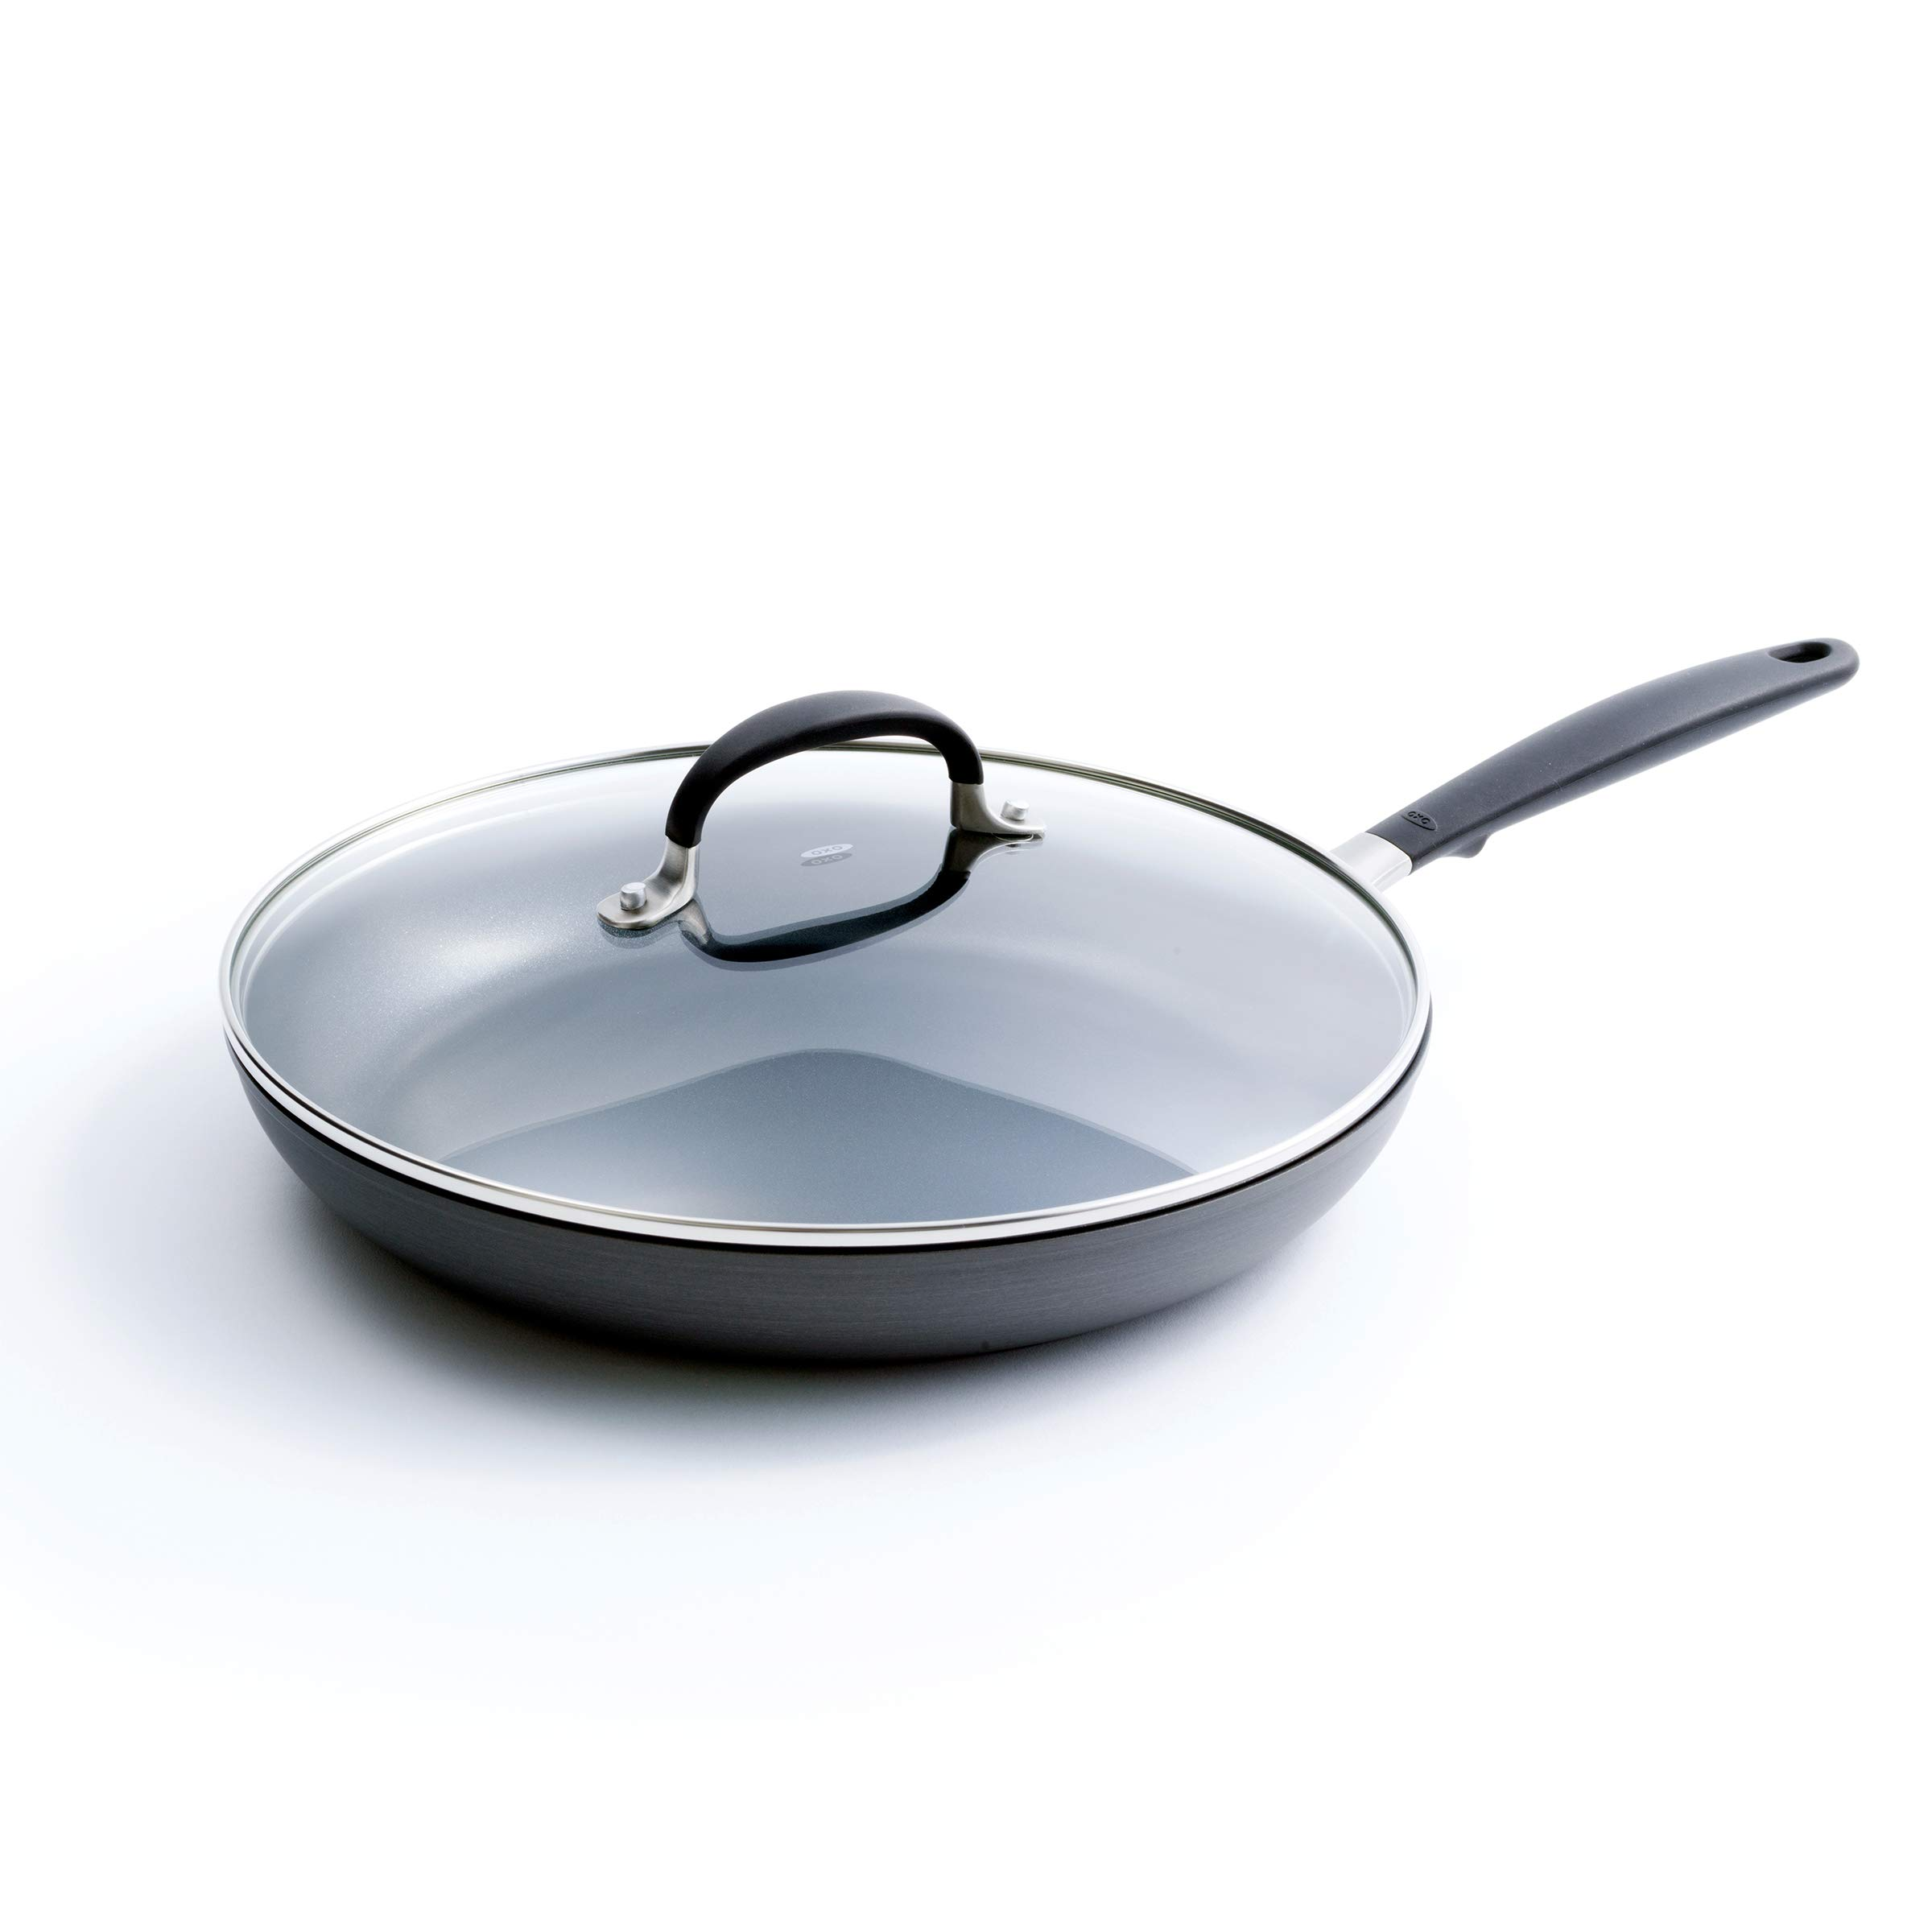 OXO CC002383-001 Good Grips Covered Frypan, 12-Inch, Black by OXO